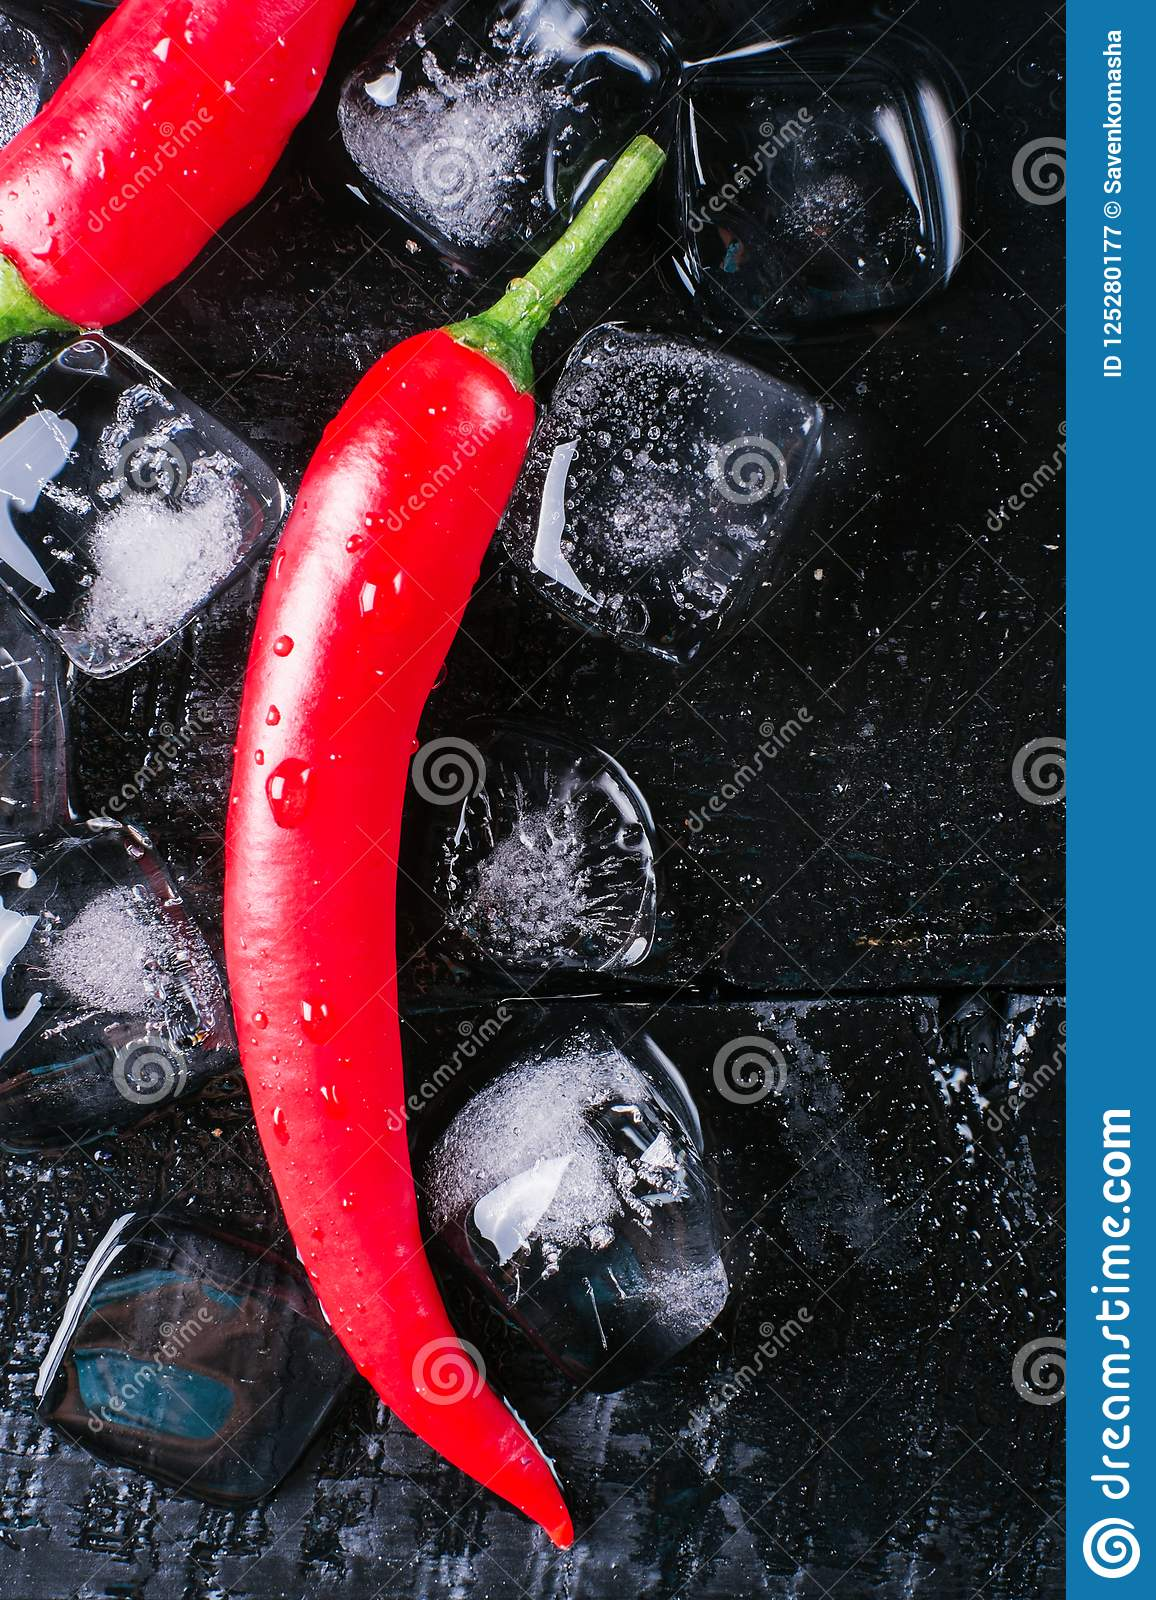 Red pepper and ice on a black wood background, fresh hot food on vintage table, freeze cold cube ice, mock up top view